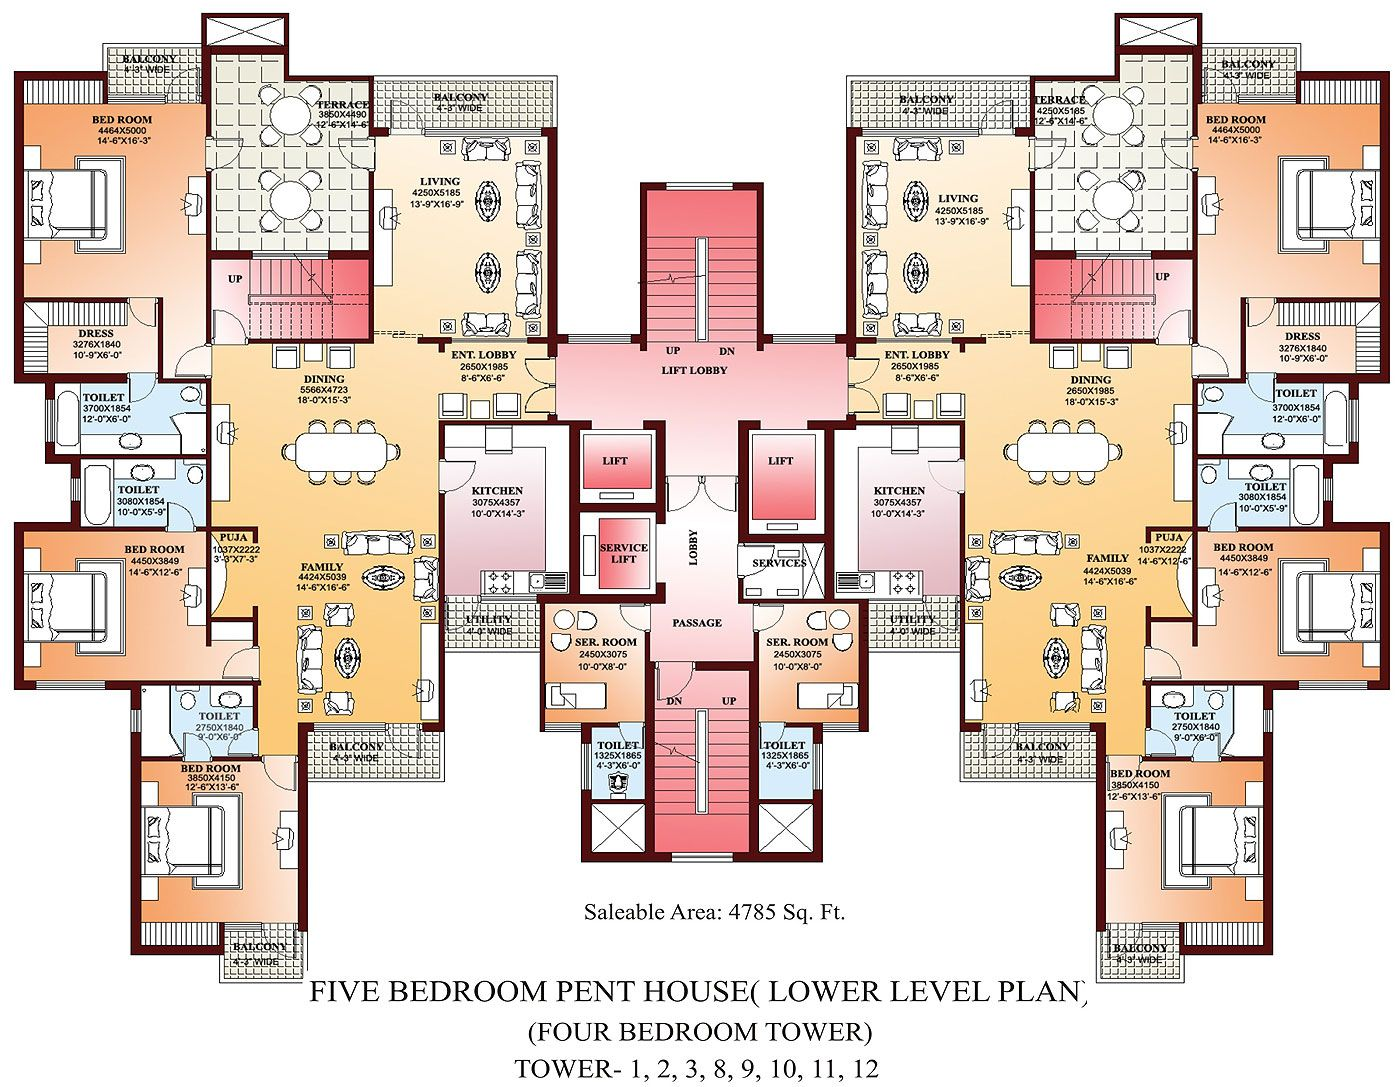 floor plans for 10 million dollar home - Google Search ...